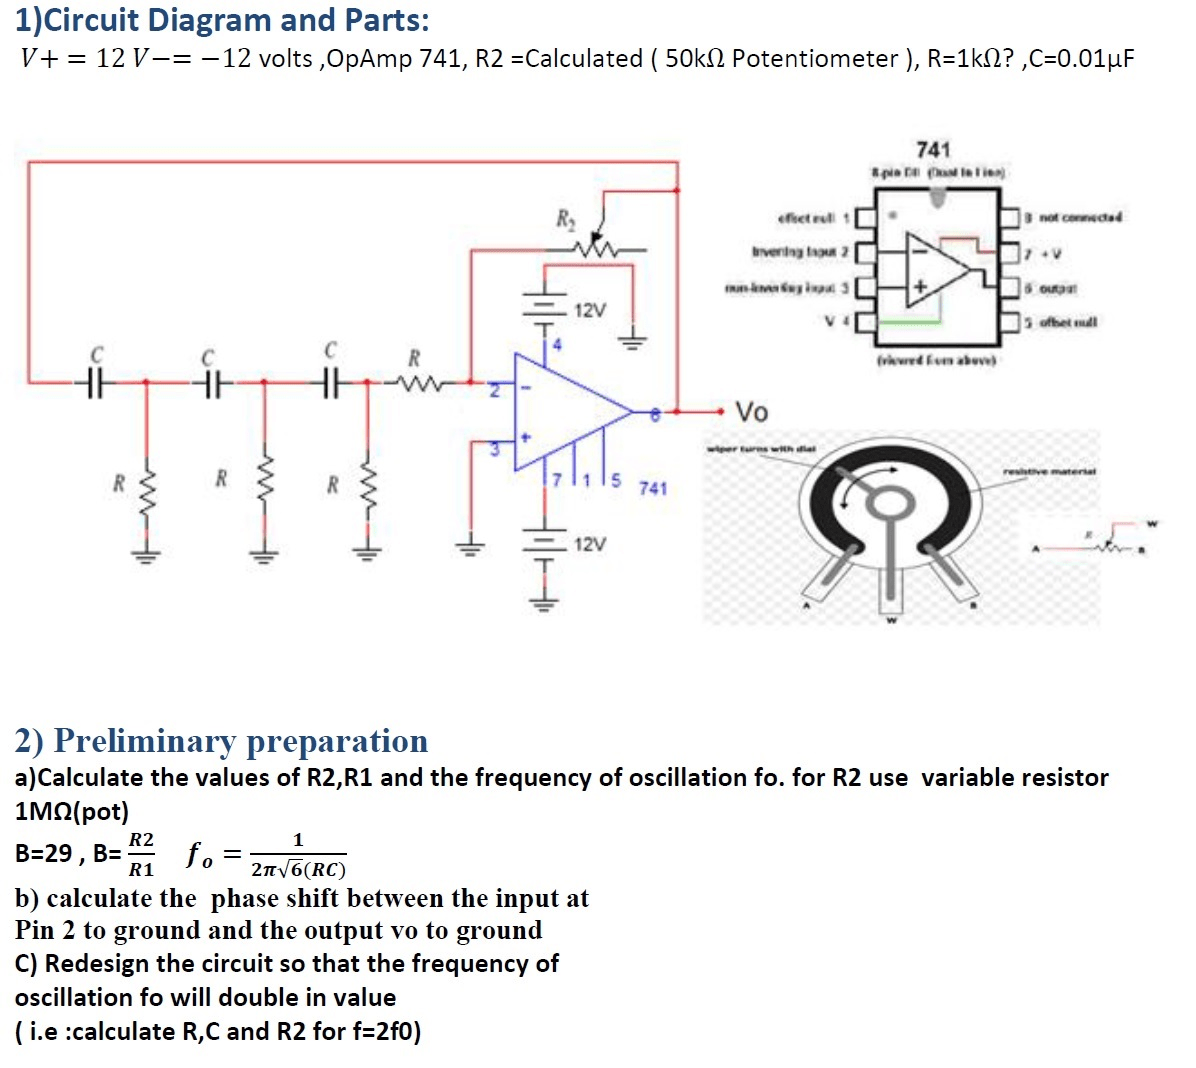 hight resolution of question v 12 v 12 volts opamp 741 r2 calculated 50k ohm potentiometer r 1k ohm c 0 01 mu f calculate the values of r2